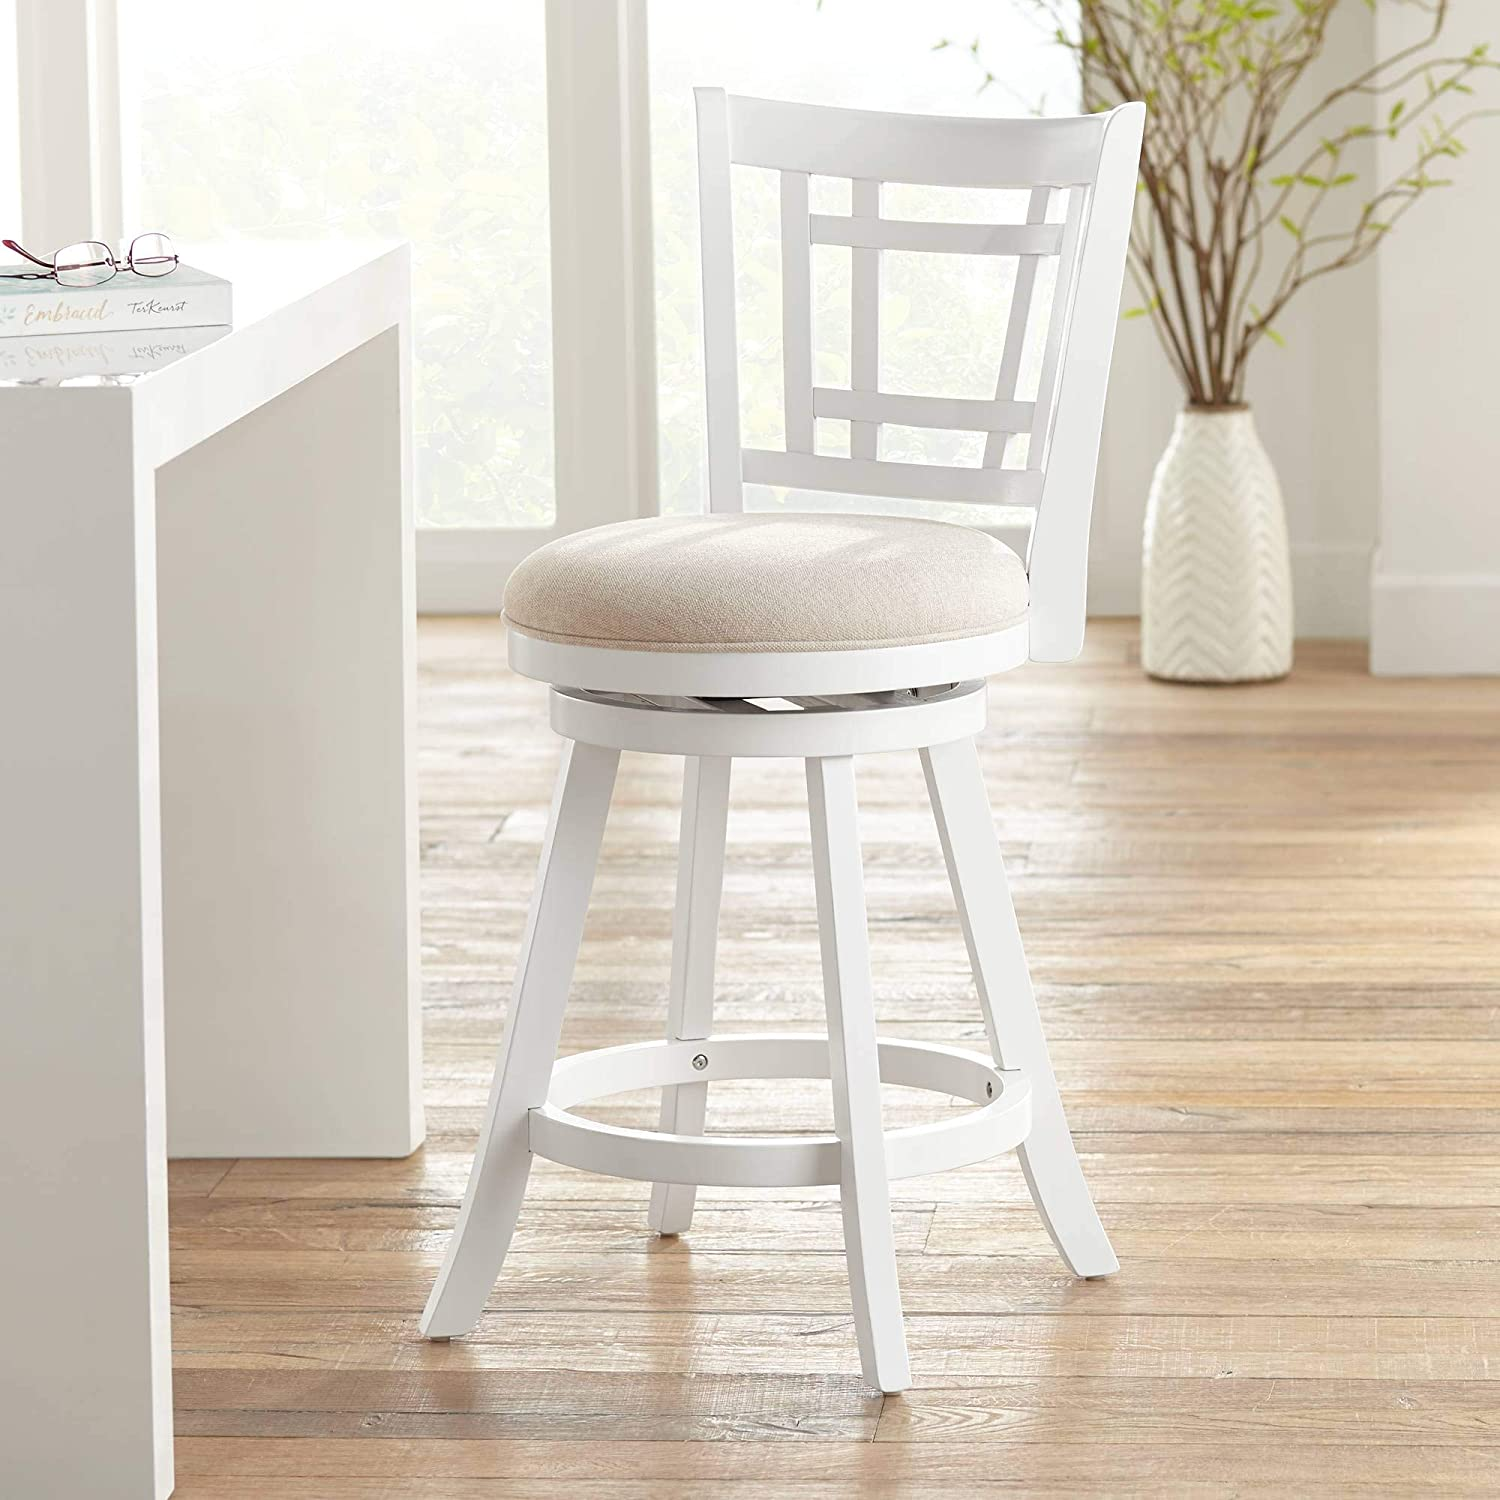 Awesome Hillsdale Furniture Fairfox Stool White Alphanode Cool Chair Designs And Ideas Alphanodeonline